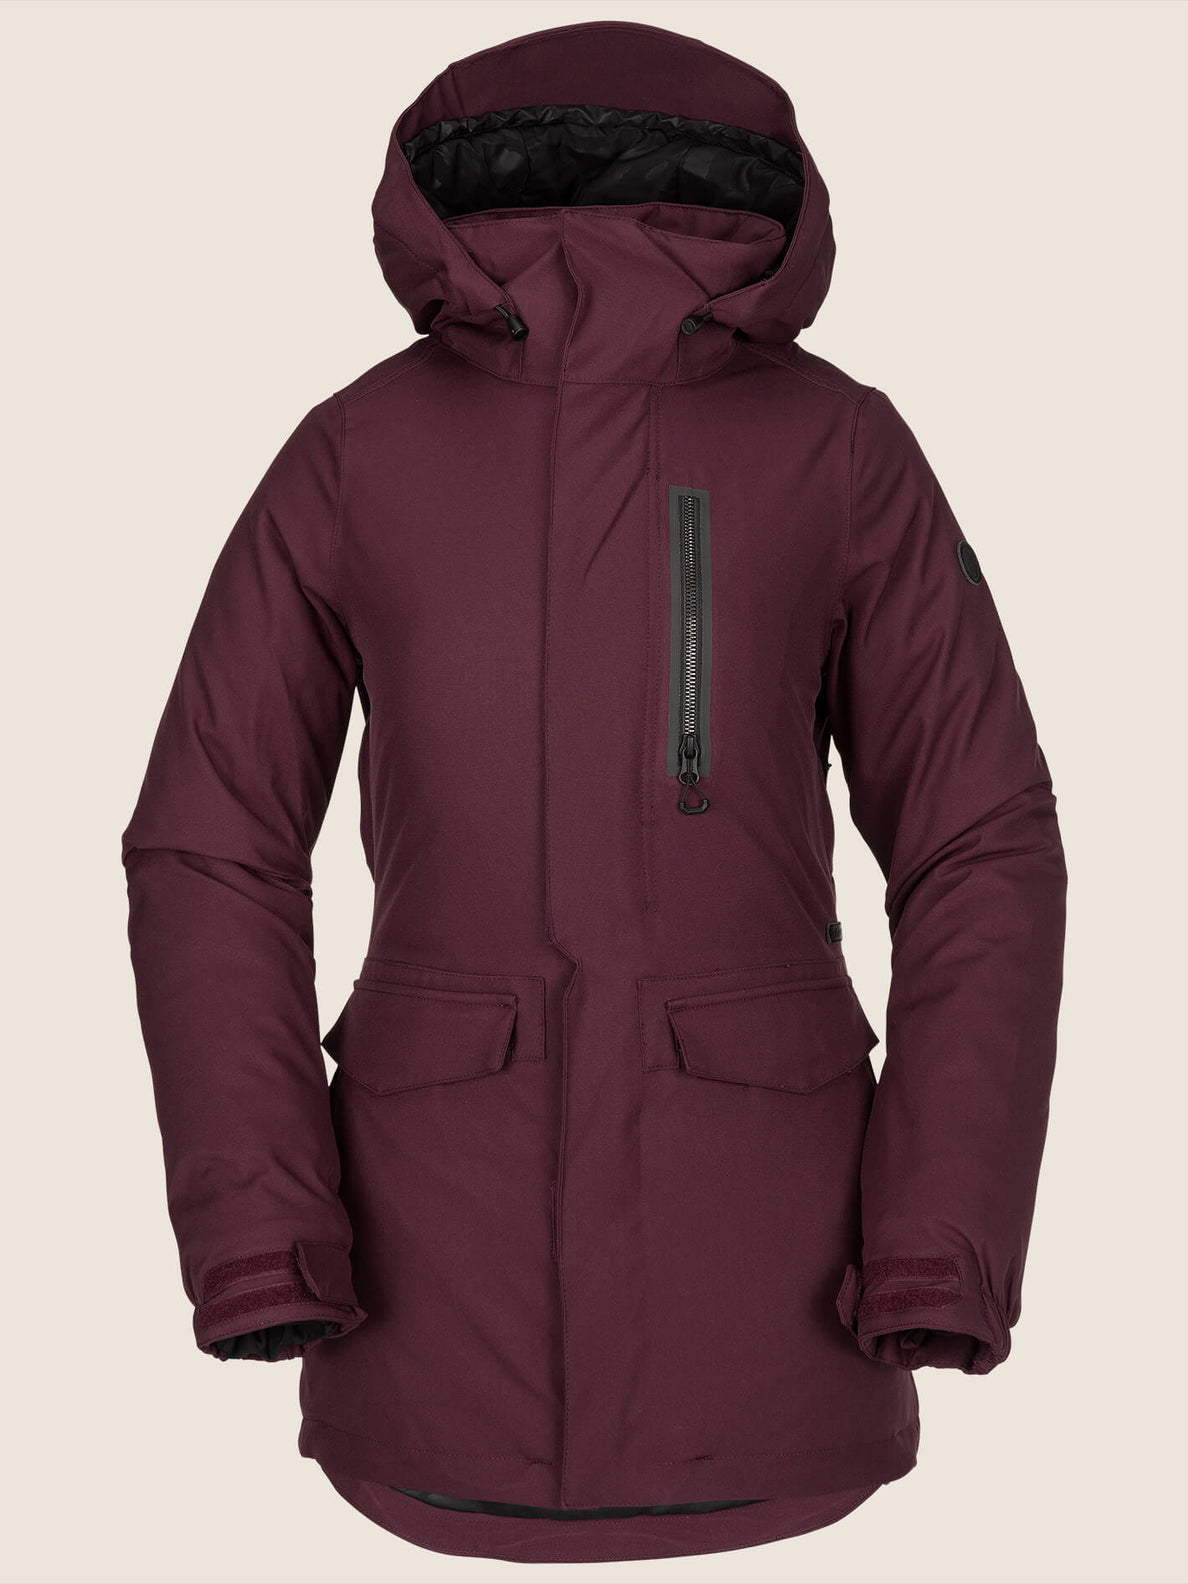 Shelter 3D Stretch Jacket In Merlot, Front View